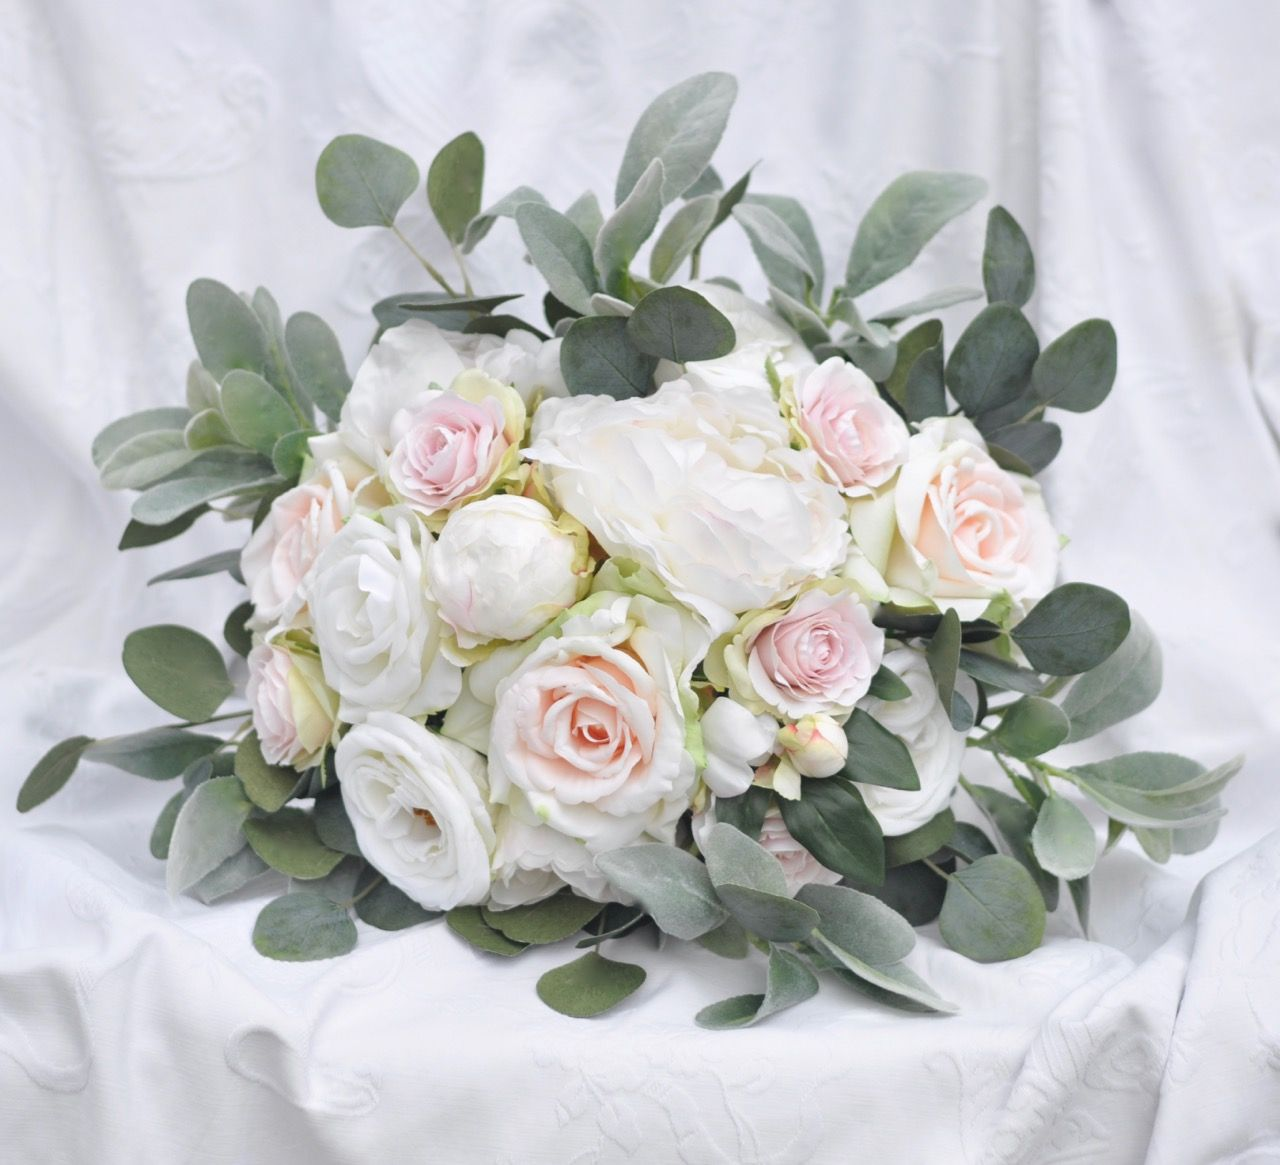 Custom Faux Wedding Flower Bouquets Shipping Worldwide From Hollys